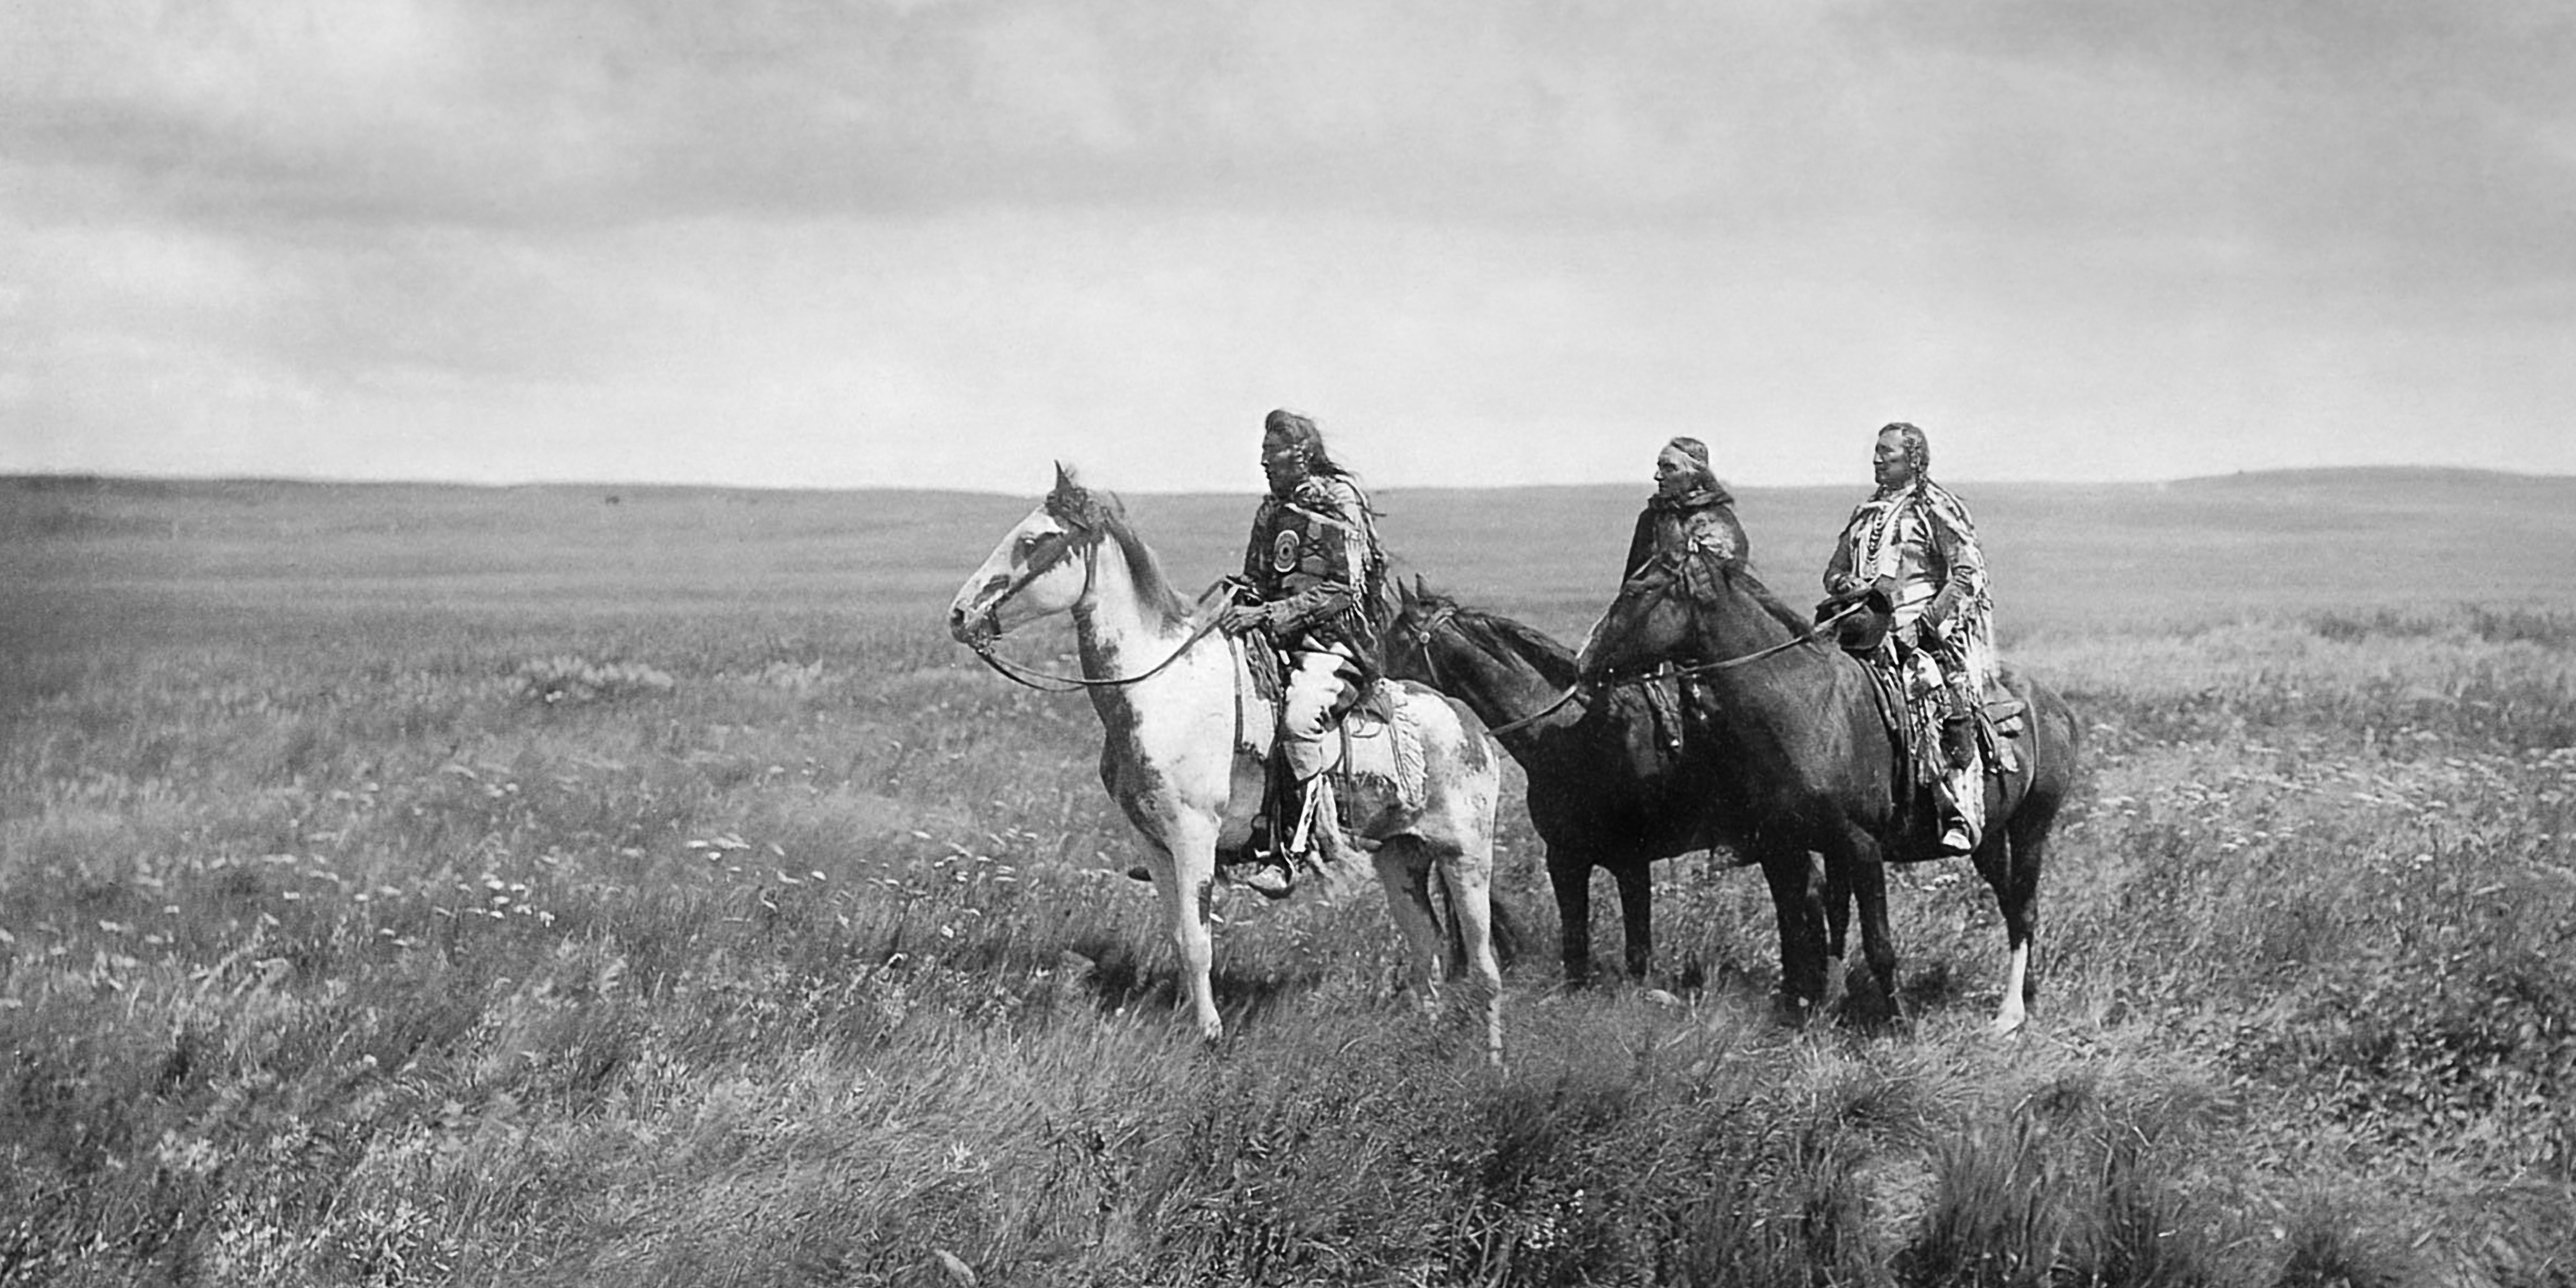 Three Piikani (Peigan) Chiefs